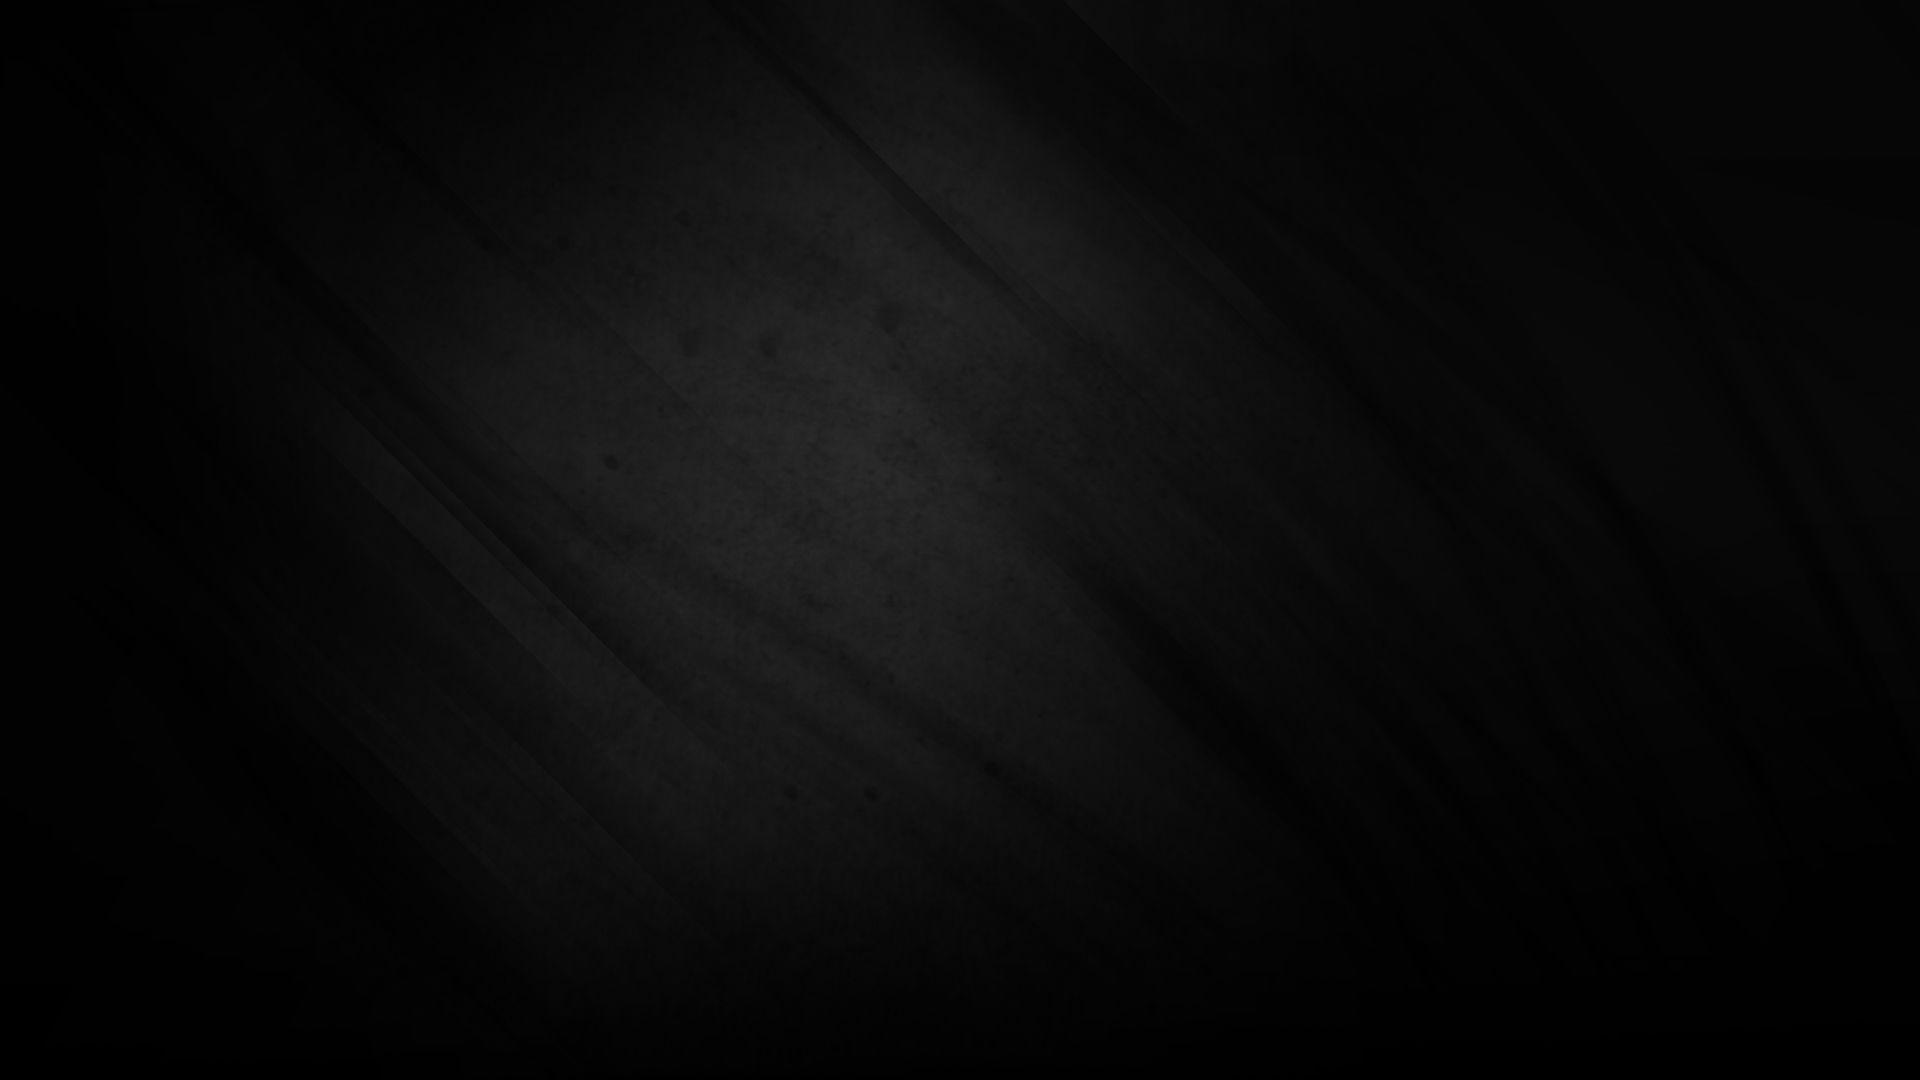 Black Wallpaper · · Free Stock